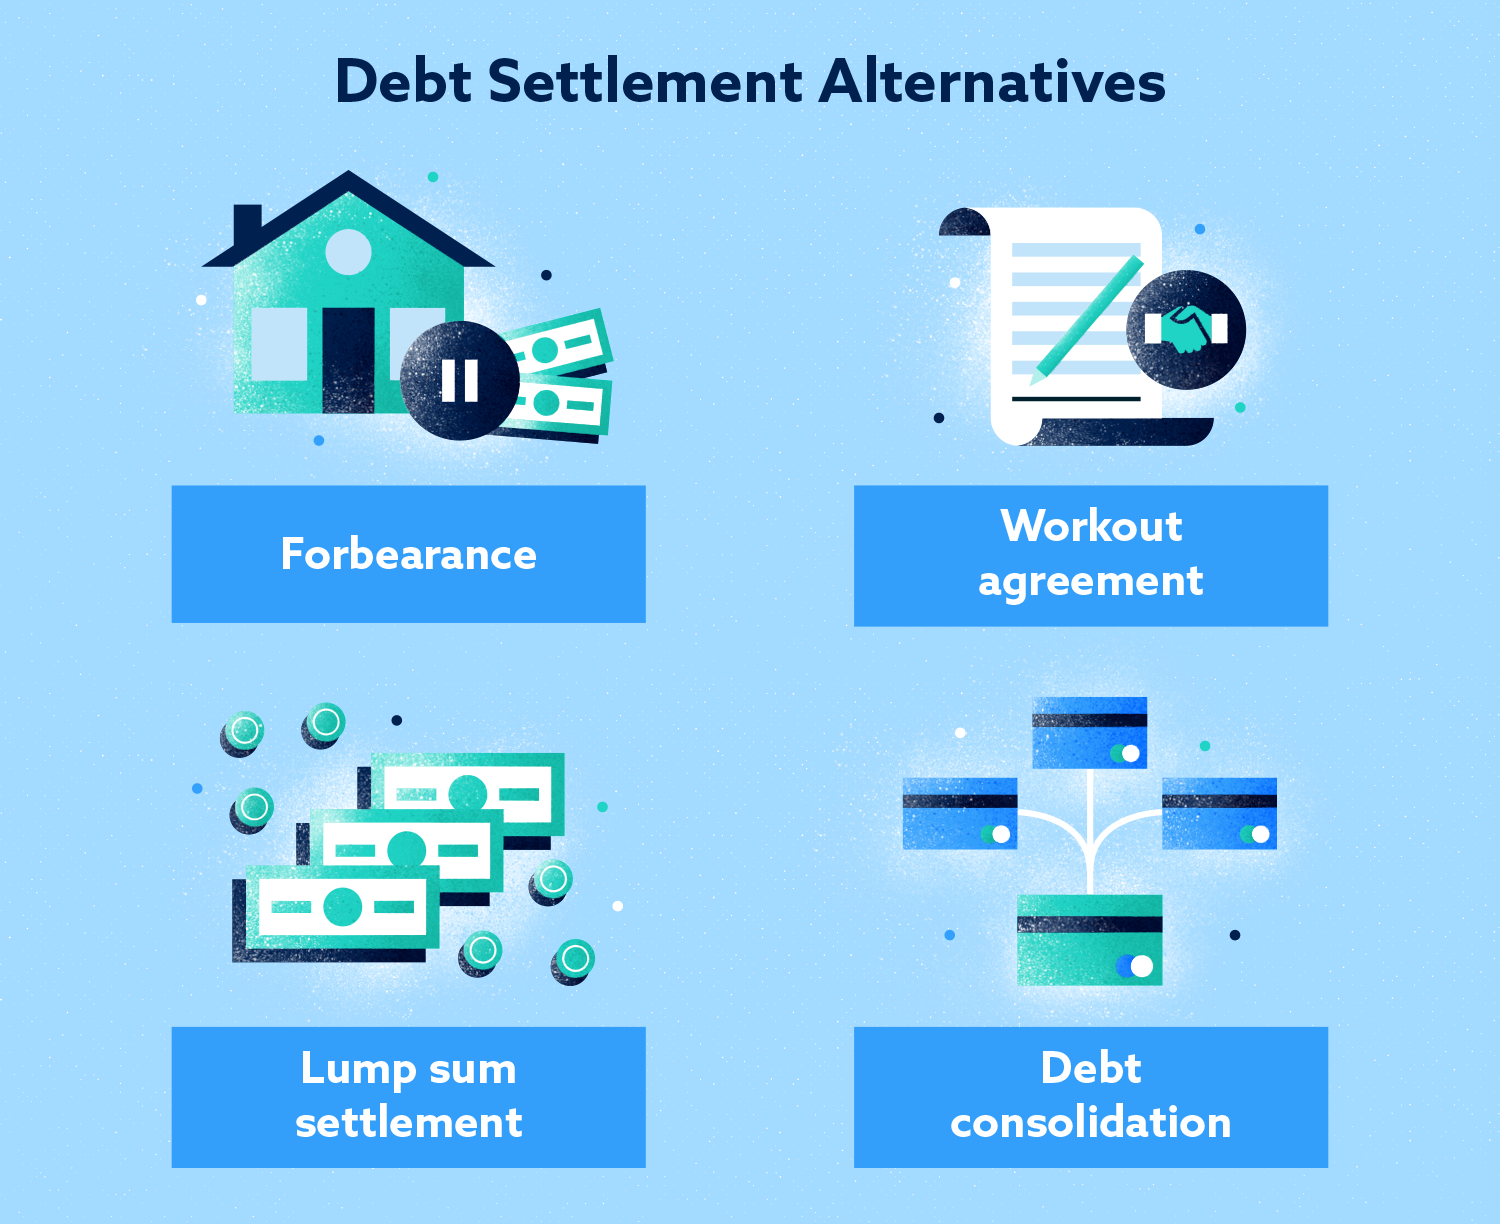 Debt Settlement Alternatives Image